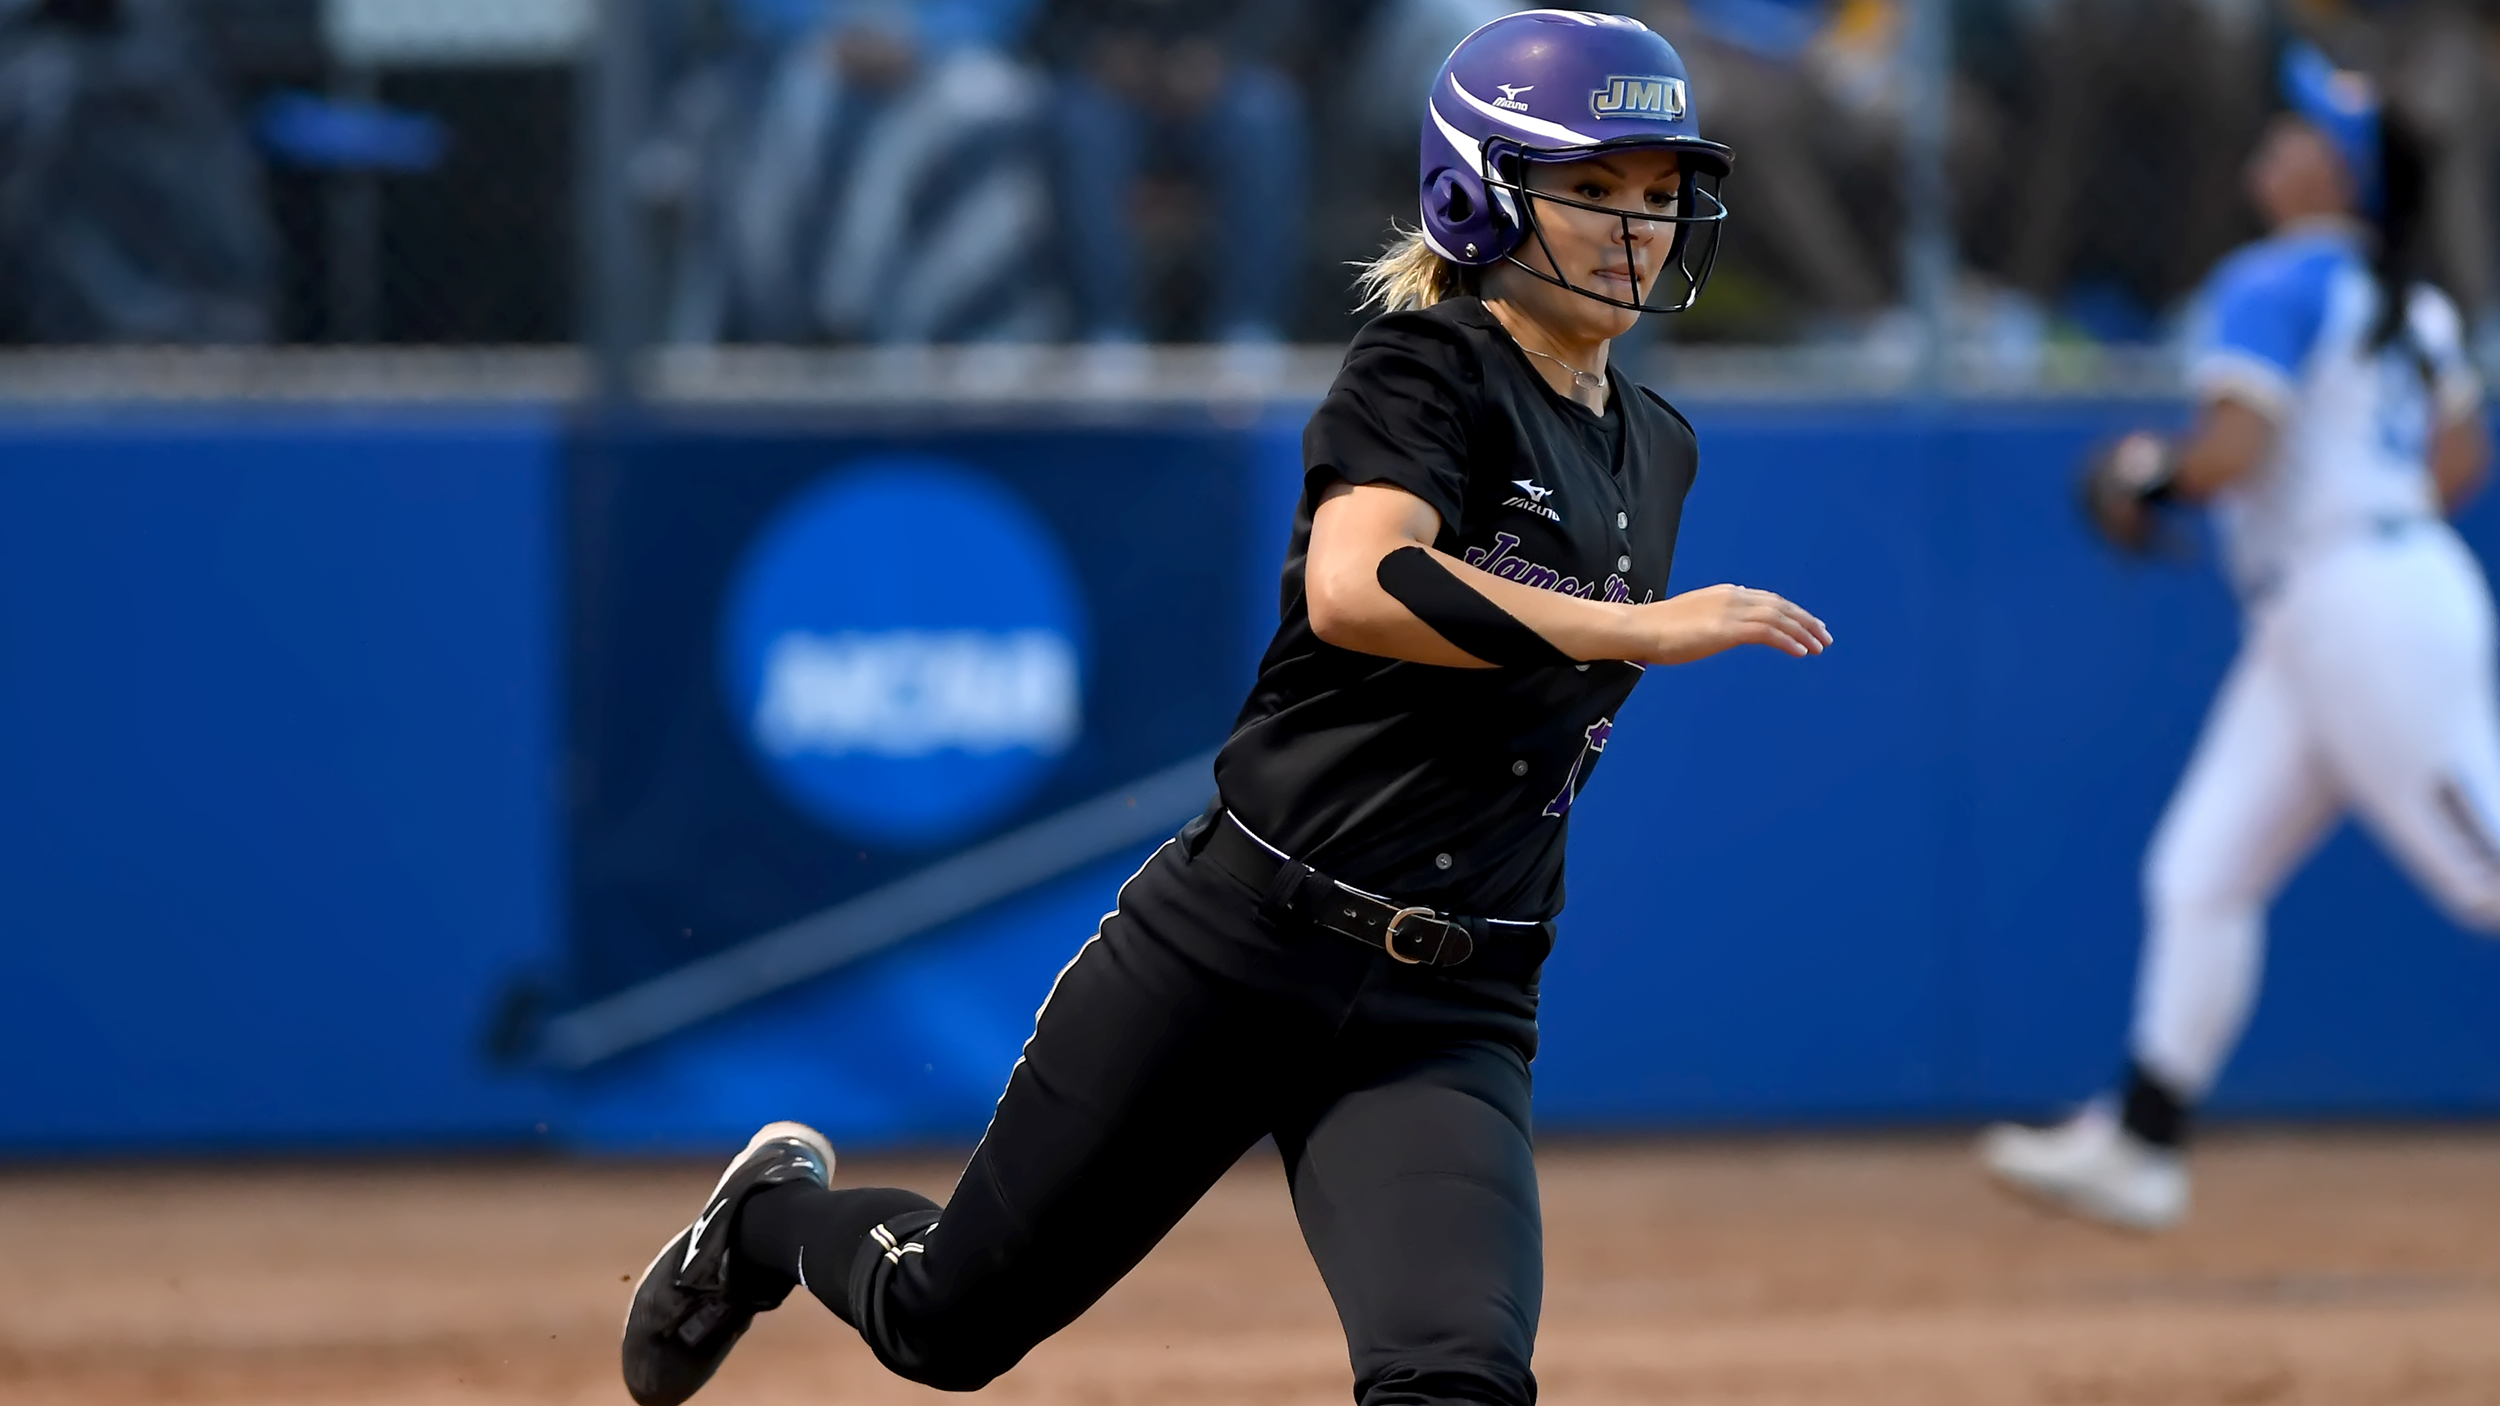 Softball: Dukes Fall to Bruins, 6-1, in Game 1